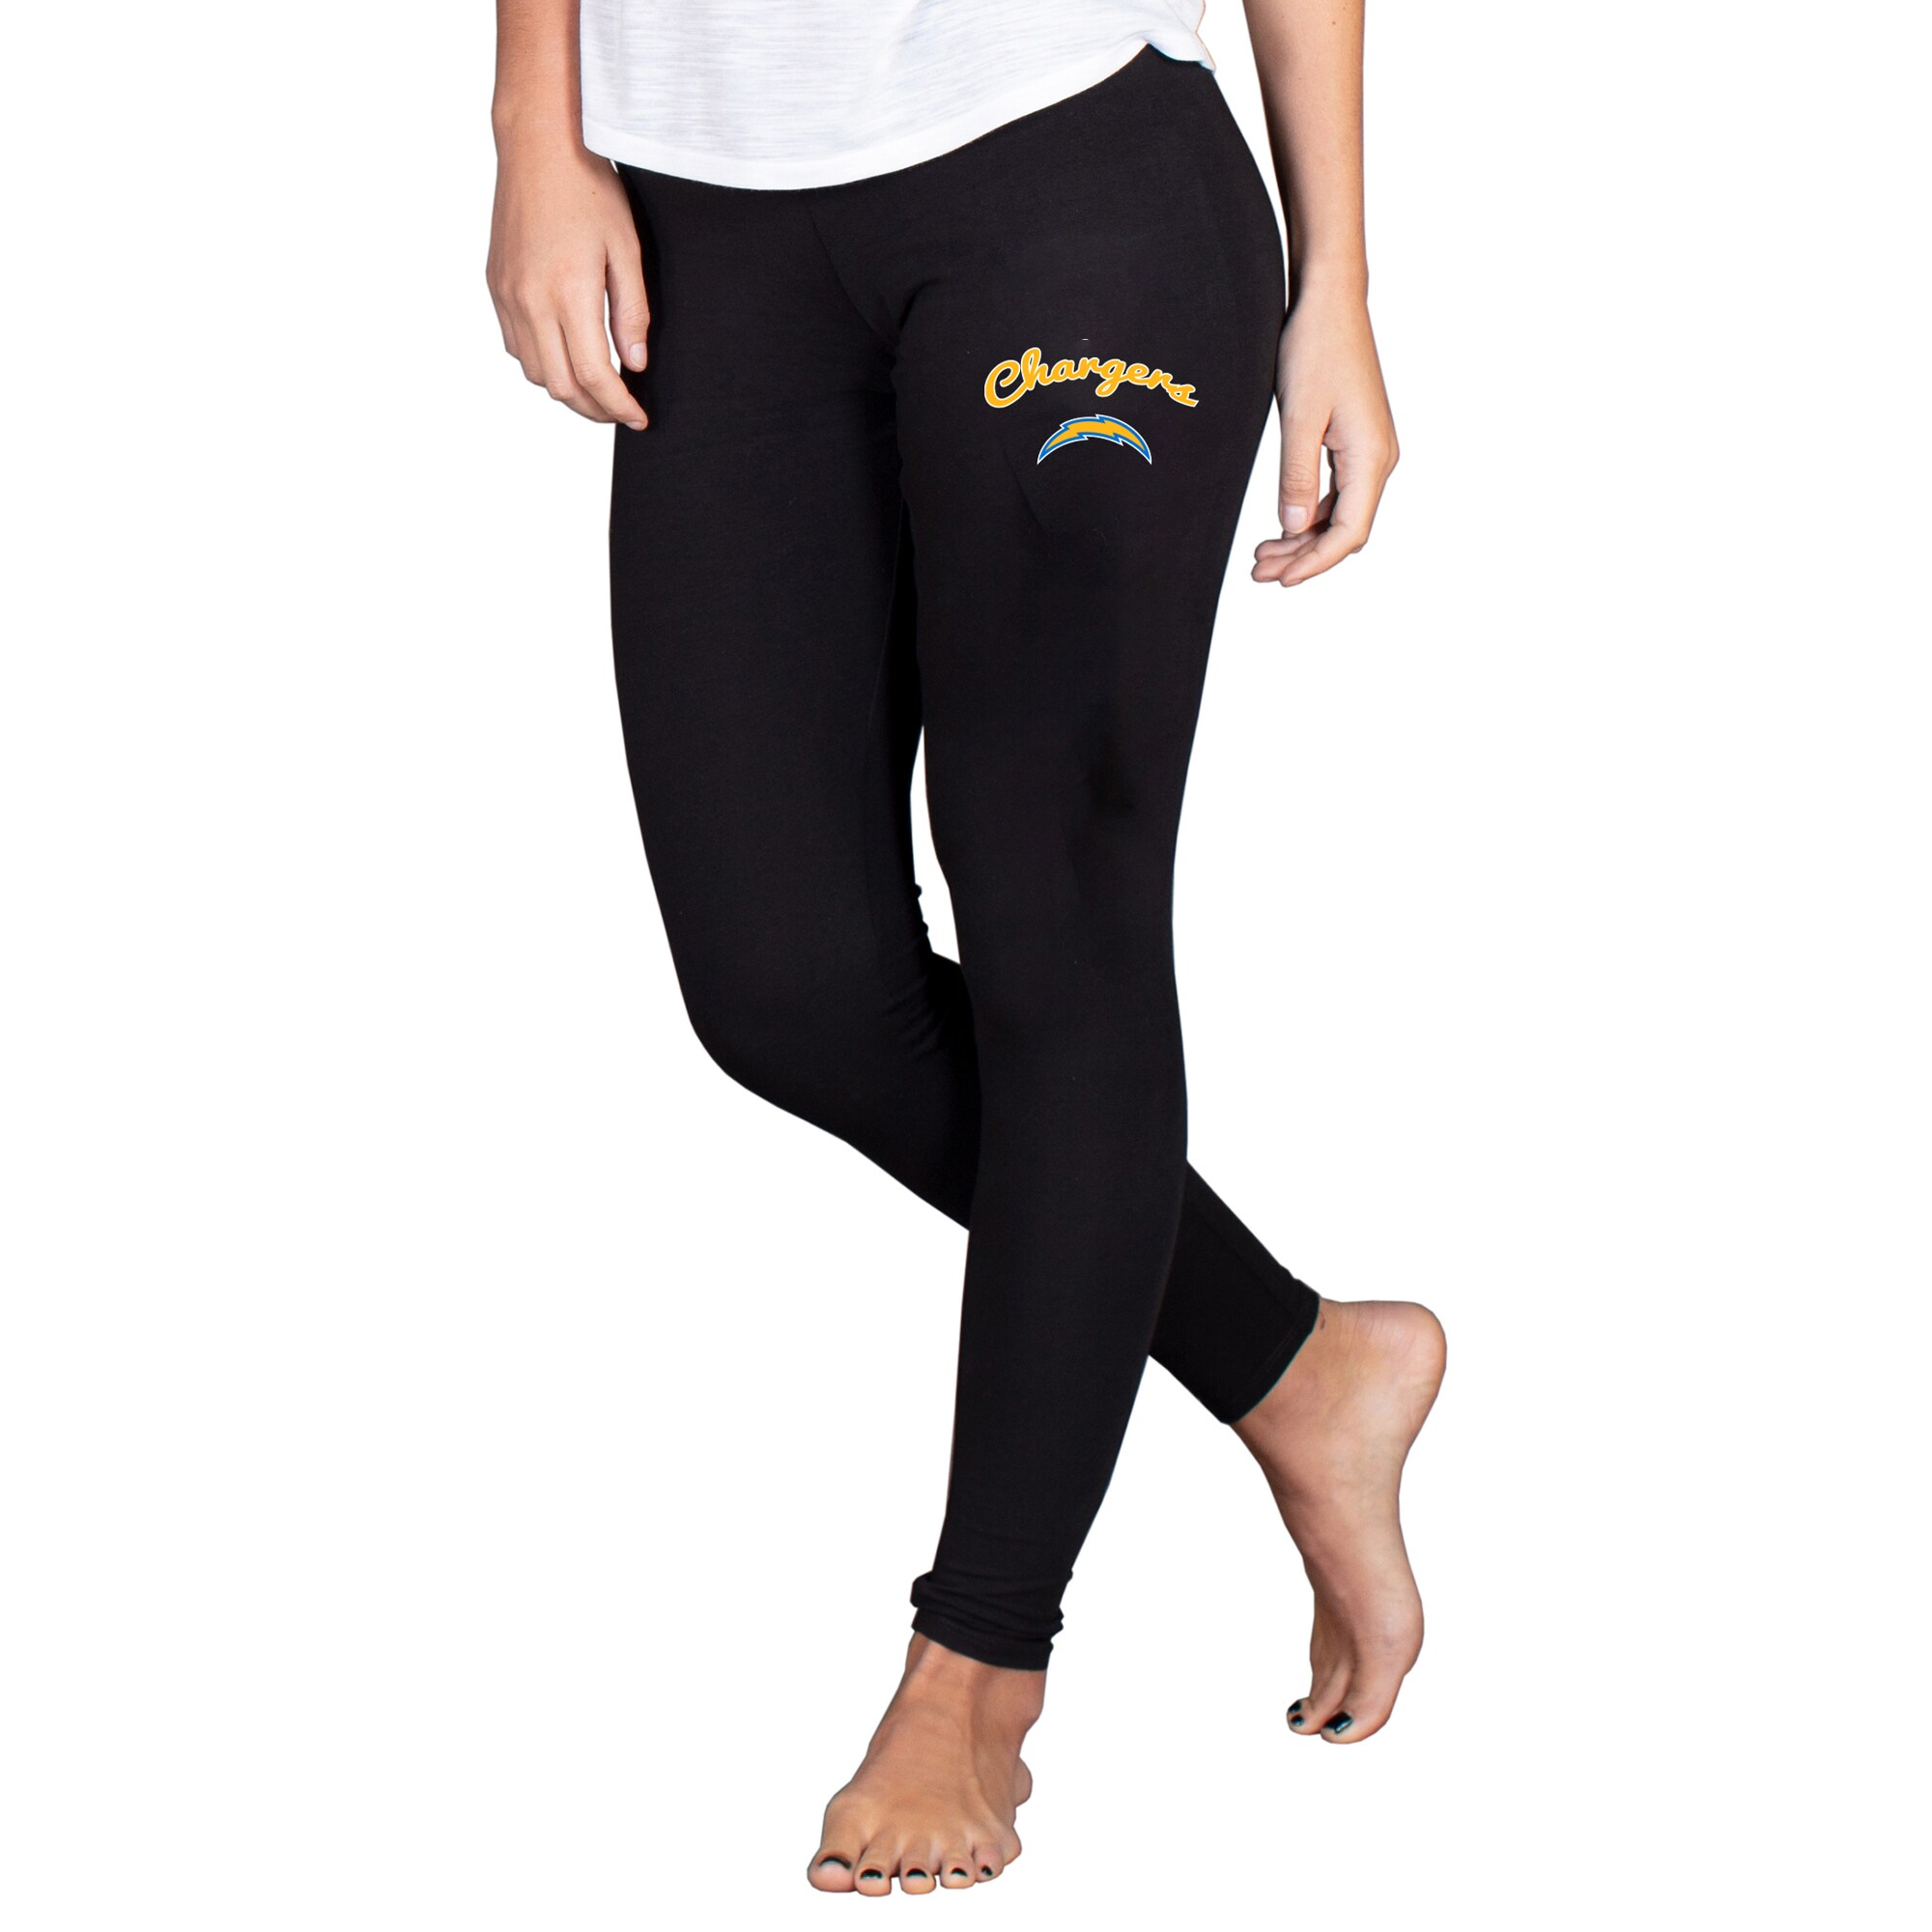 Los Angeles Chargers Concepts Sport Women's Fraction Leggings - Black